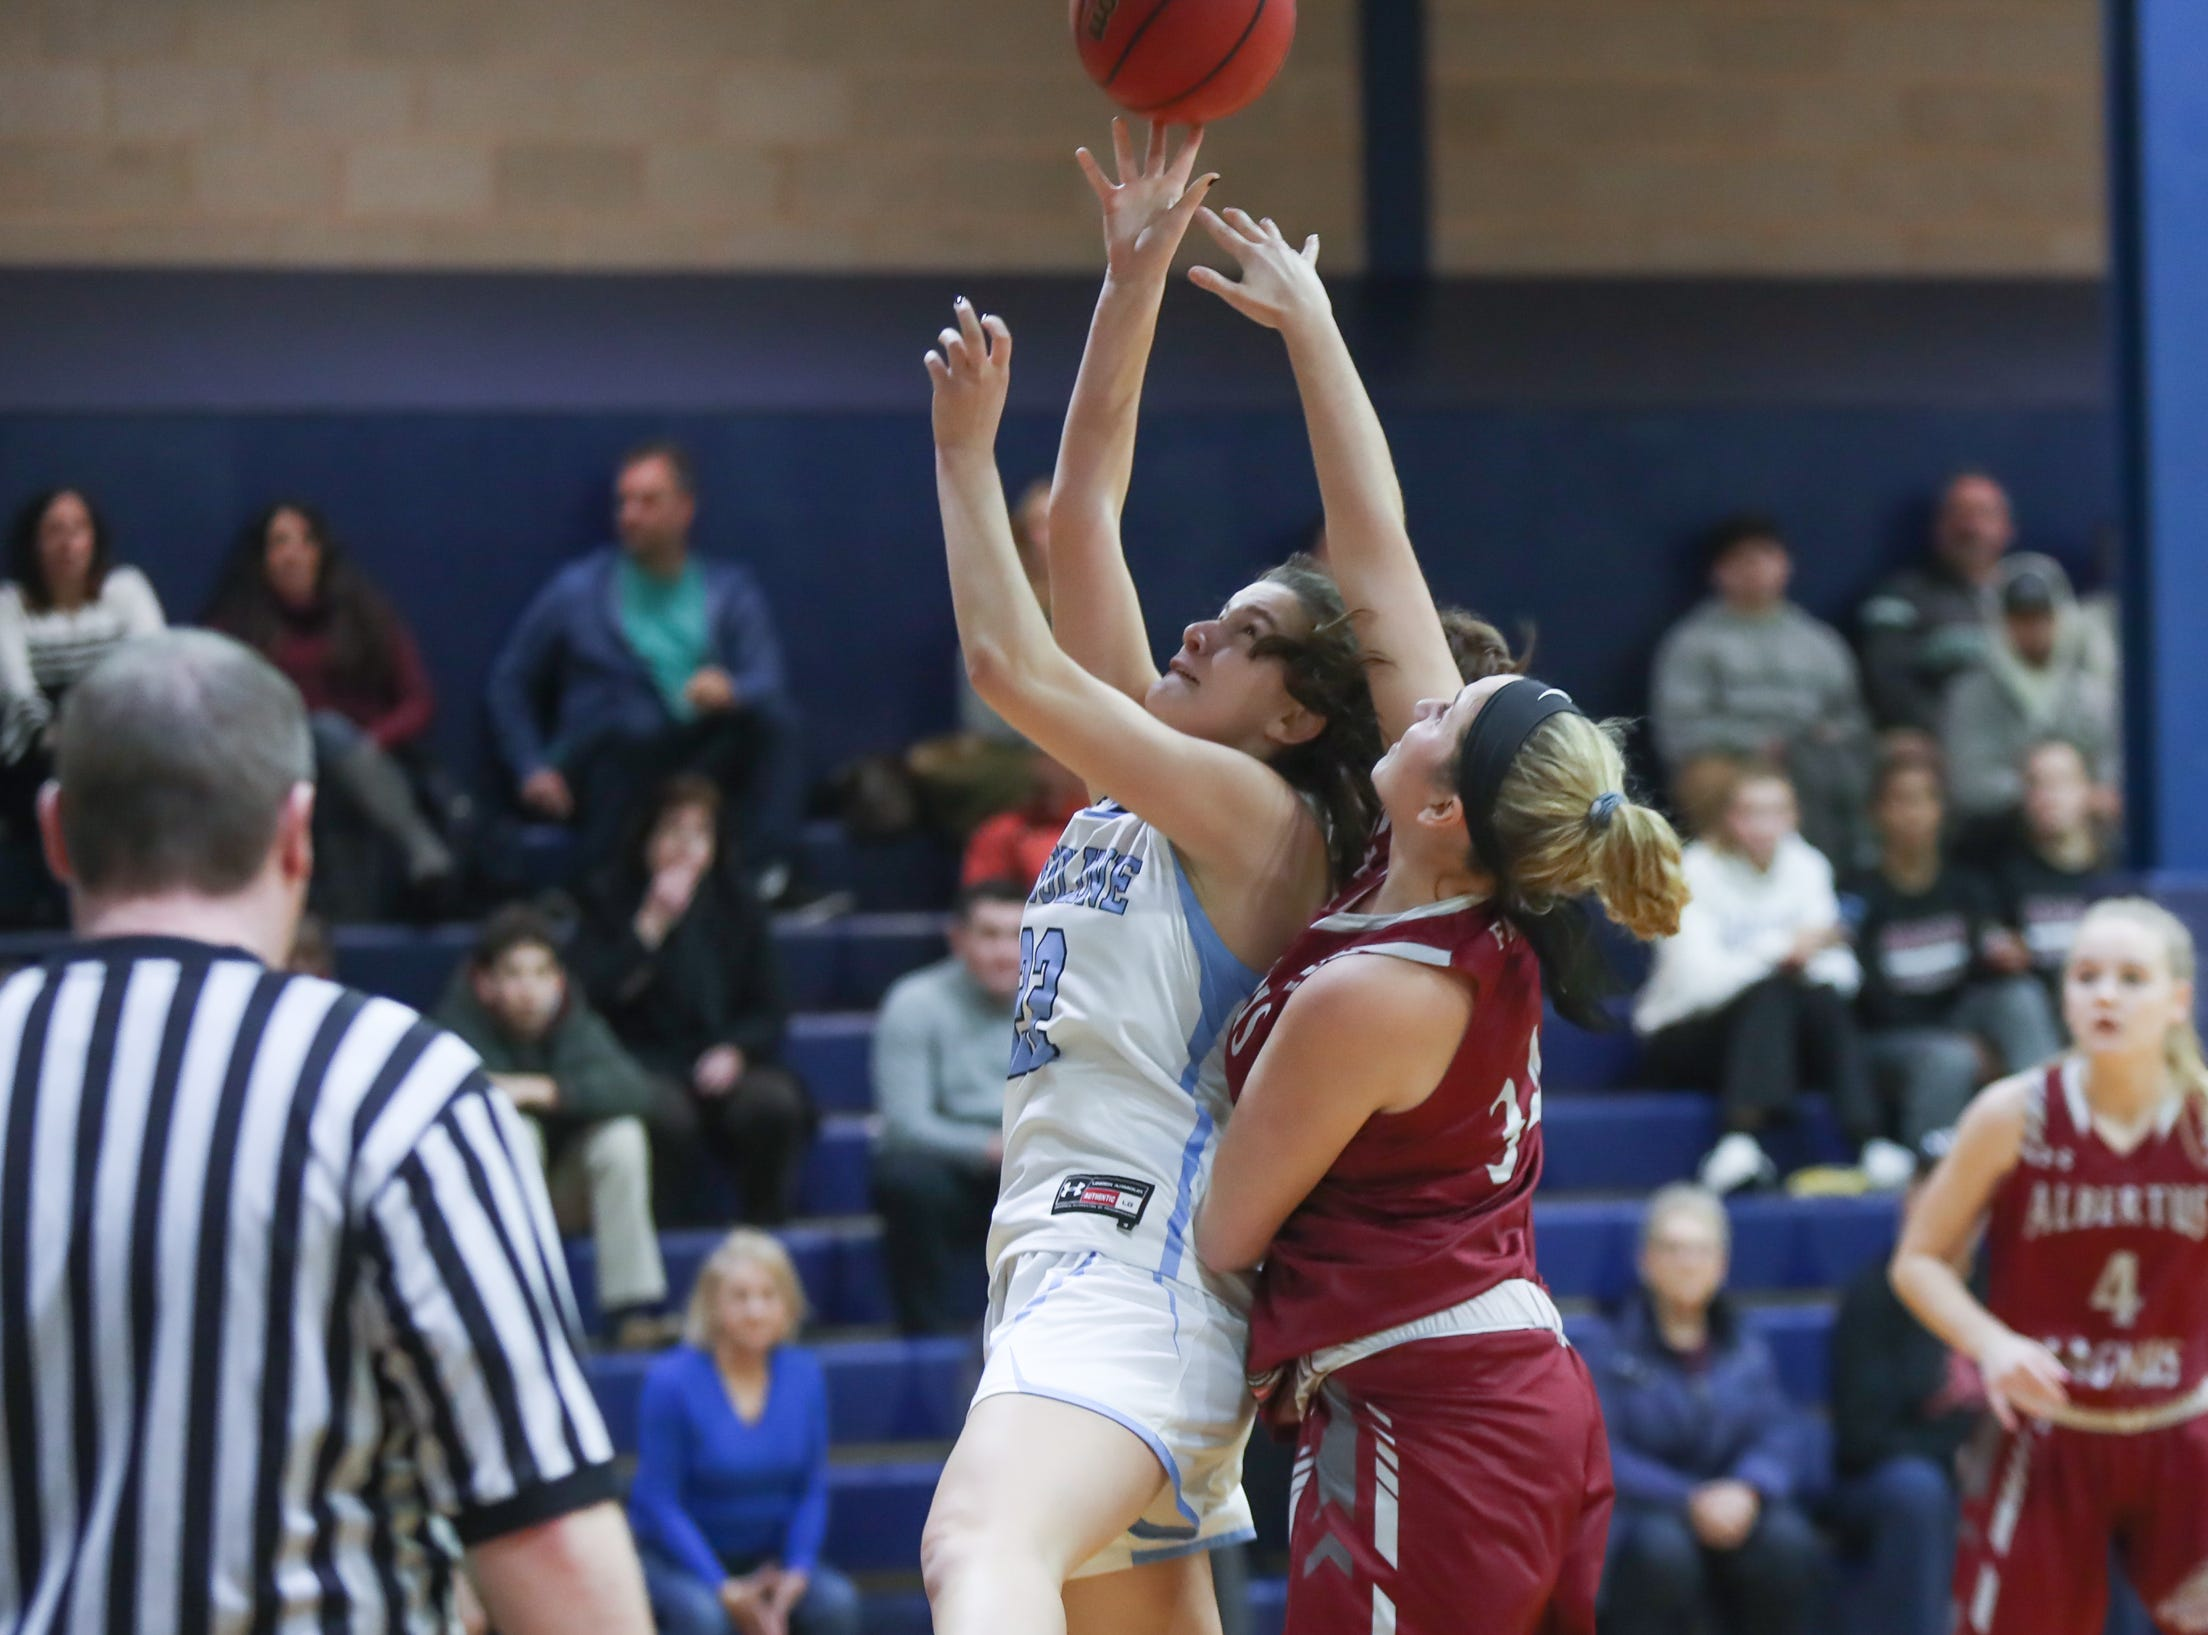 Ursuline's Alexa Quirolo (22) Albertus' Chloe Cavallo (34) during girls varsity basketball action at The Ursuline School in New Rochelle on Wednesday, January 9, 2019.  Ursuline defeated Albertus 68-48.